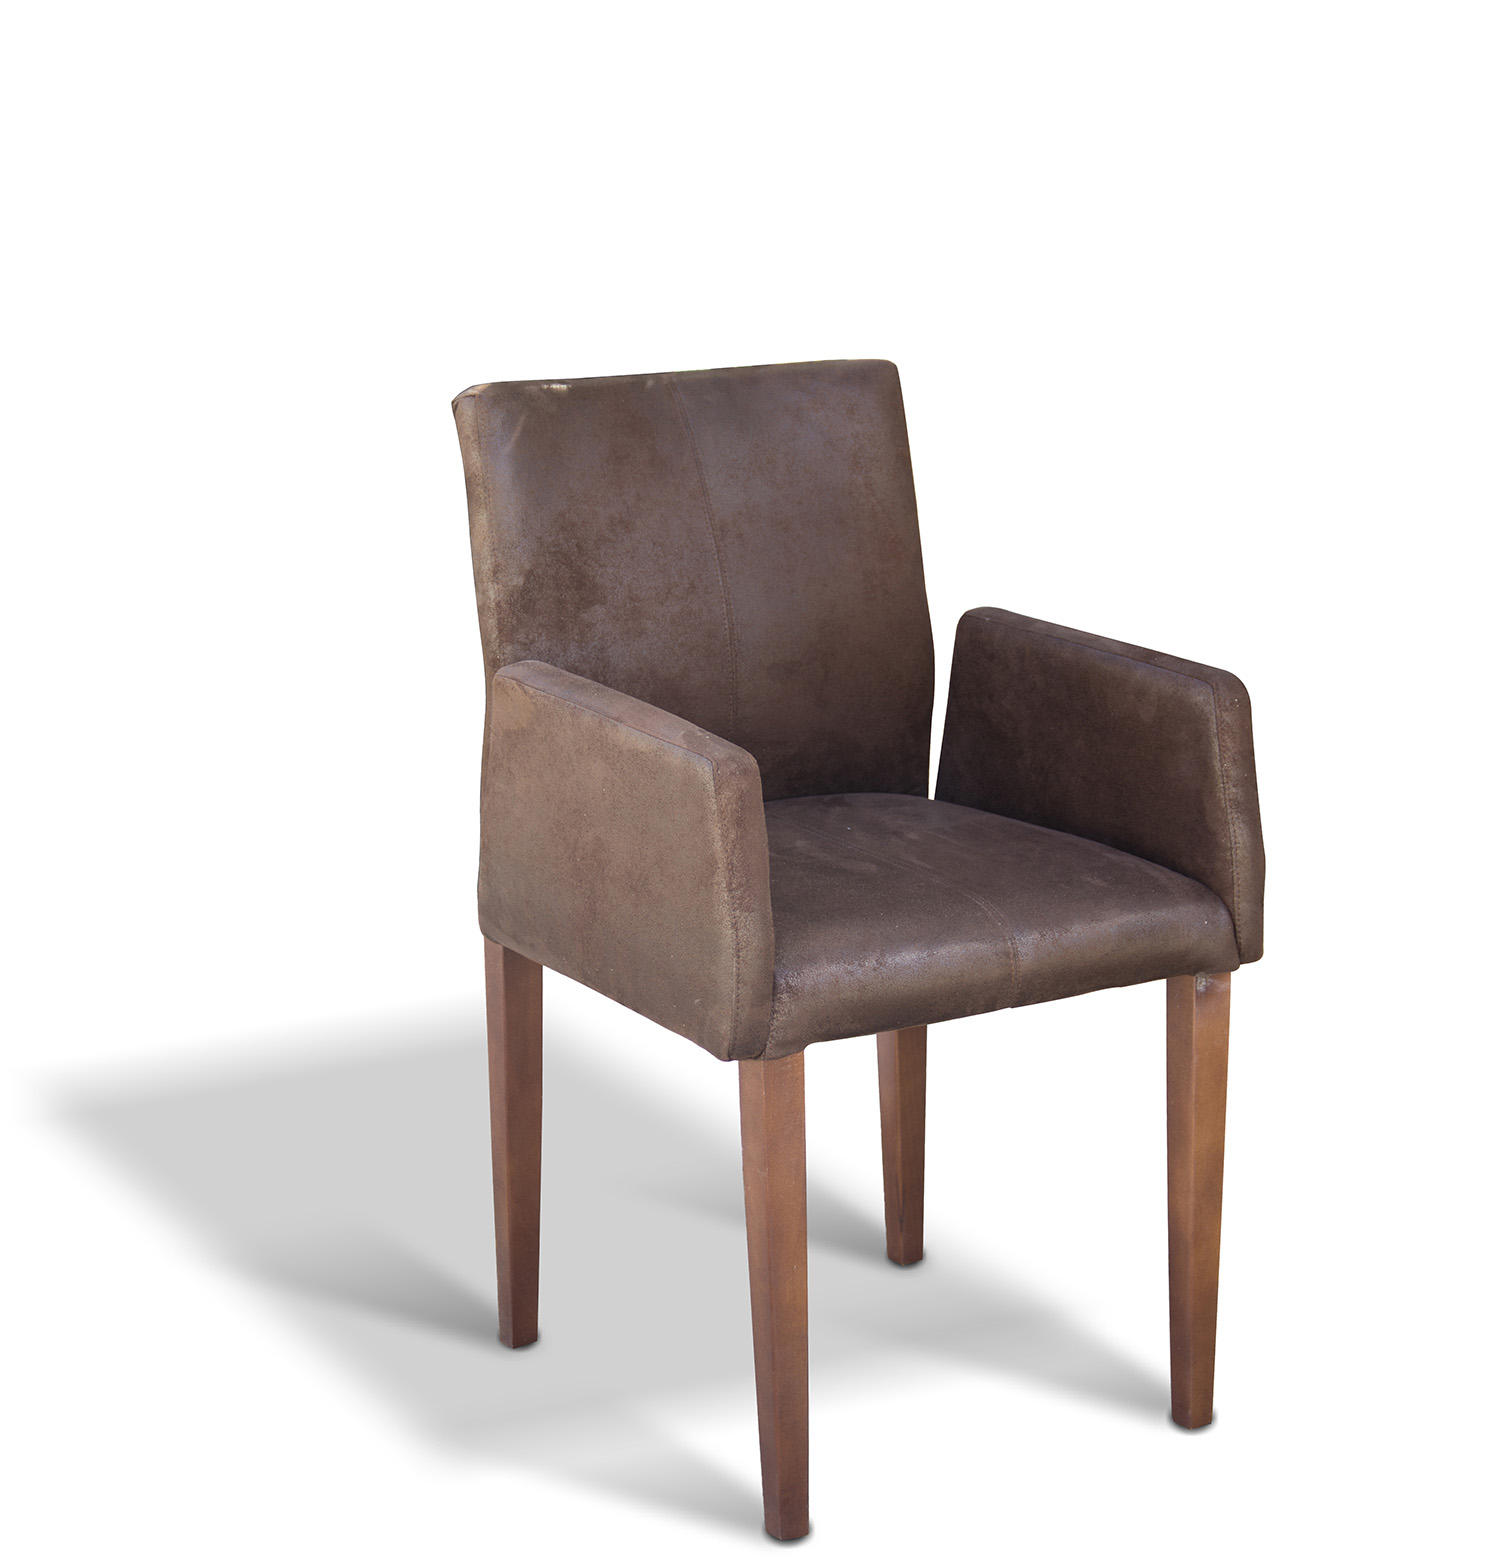 Viena Chair - 280 GBP